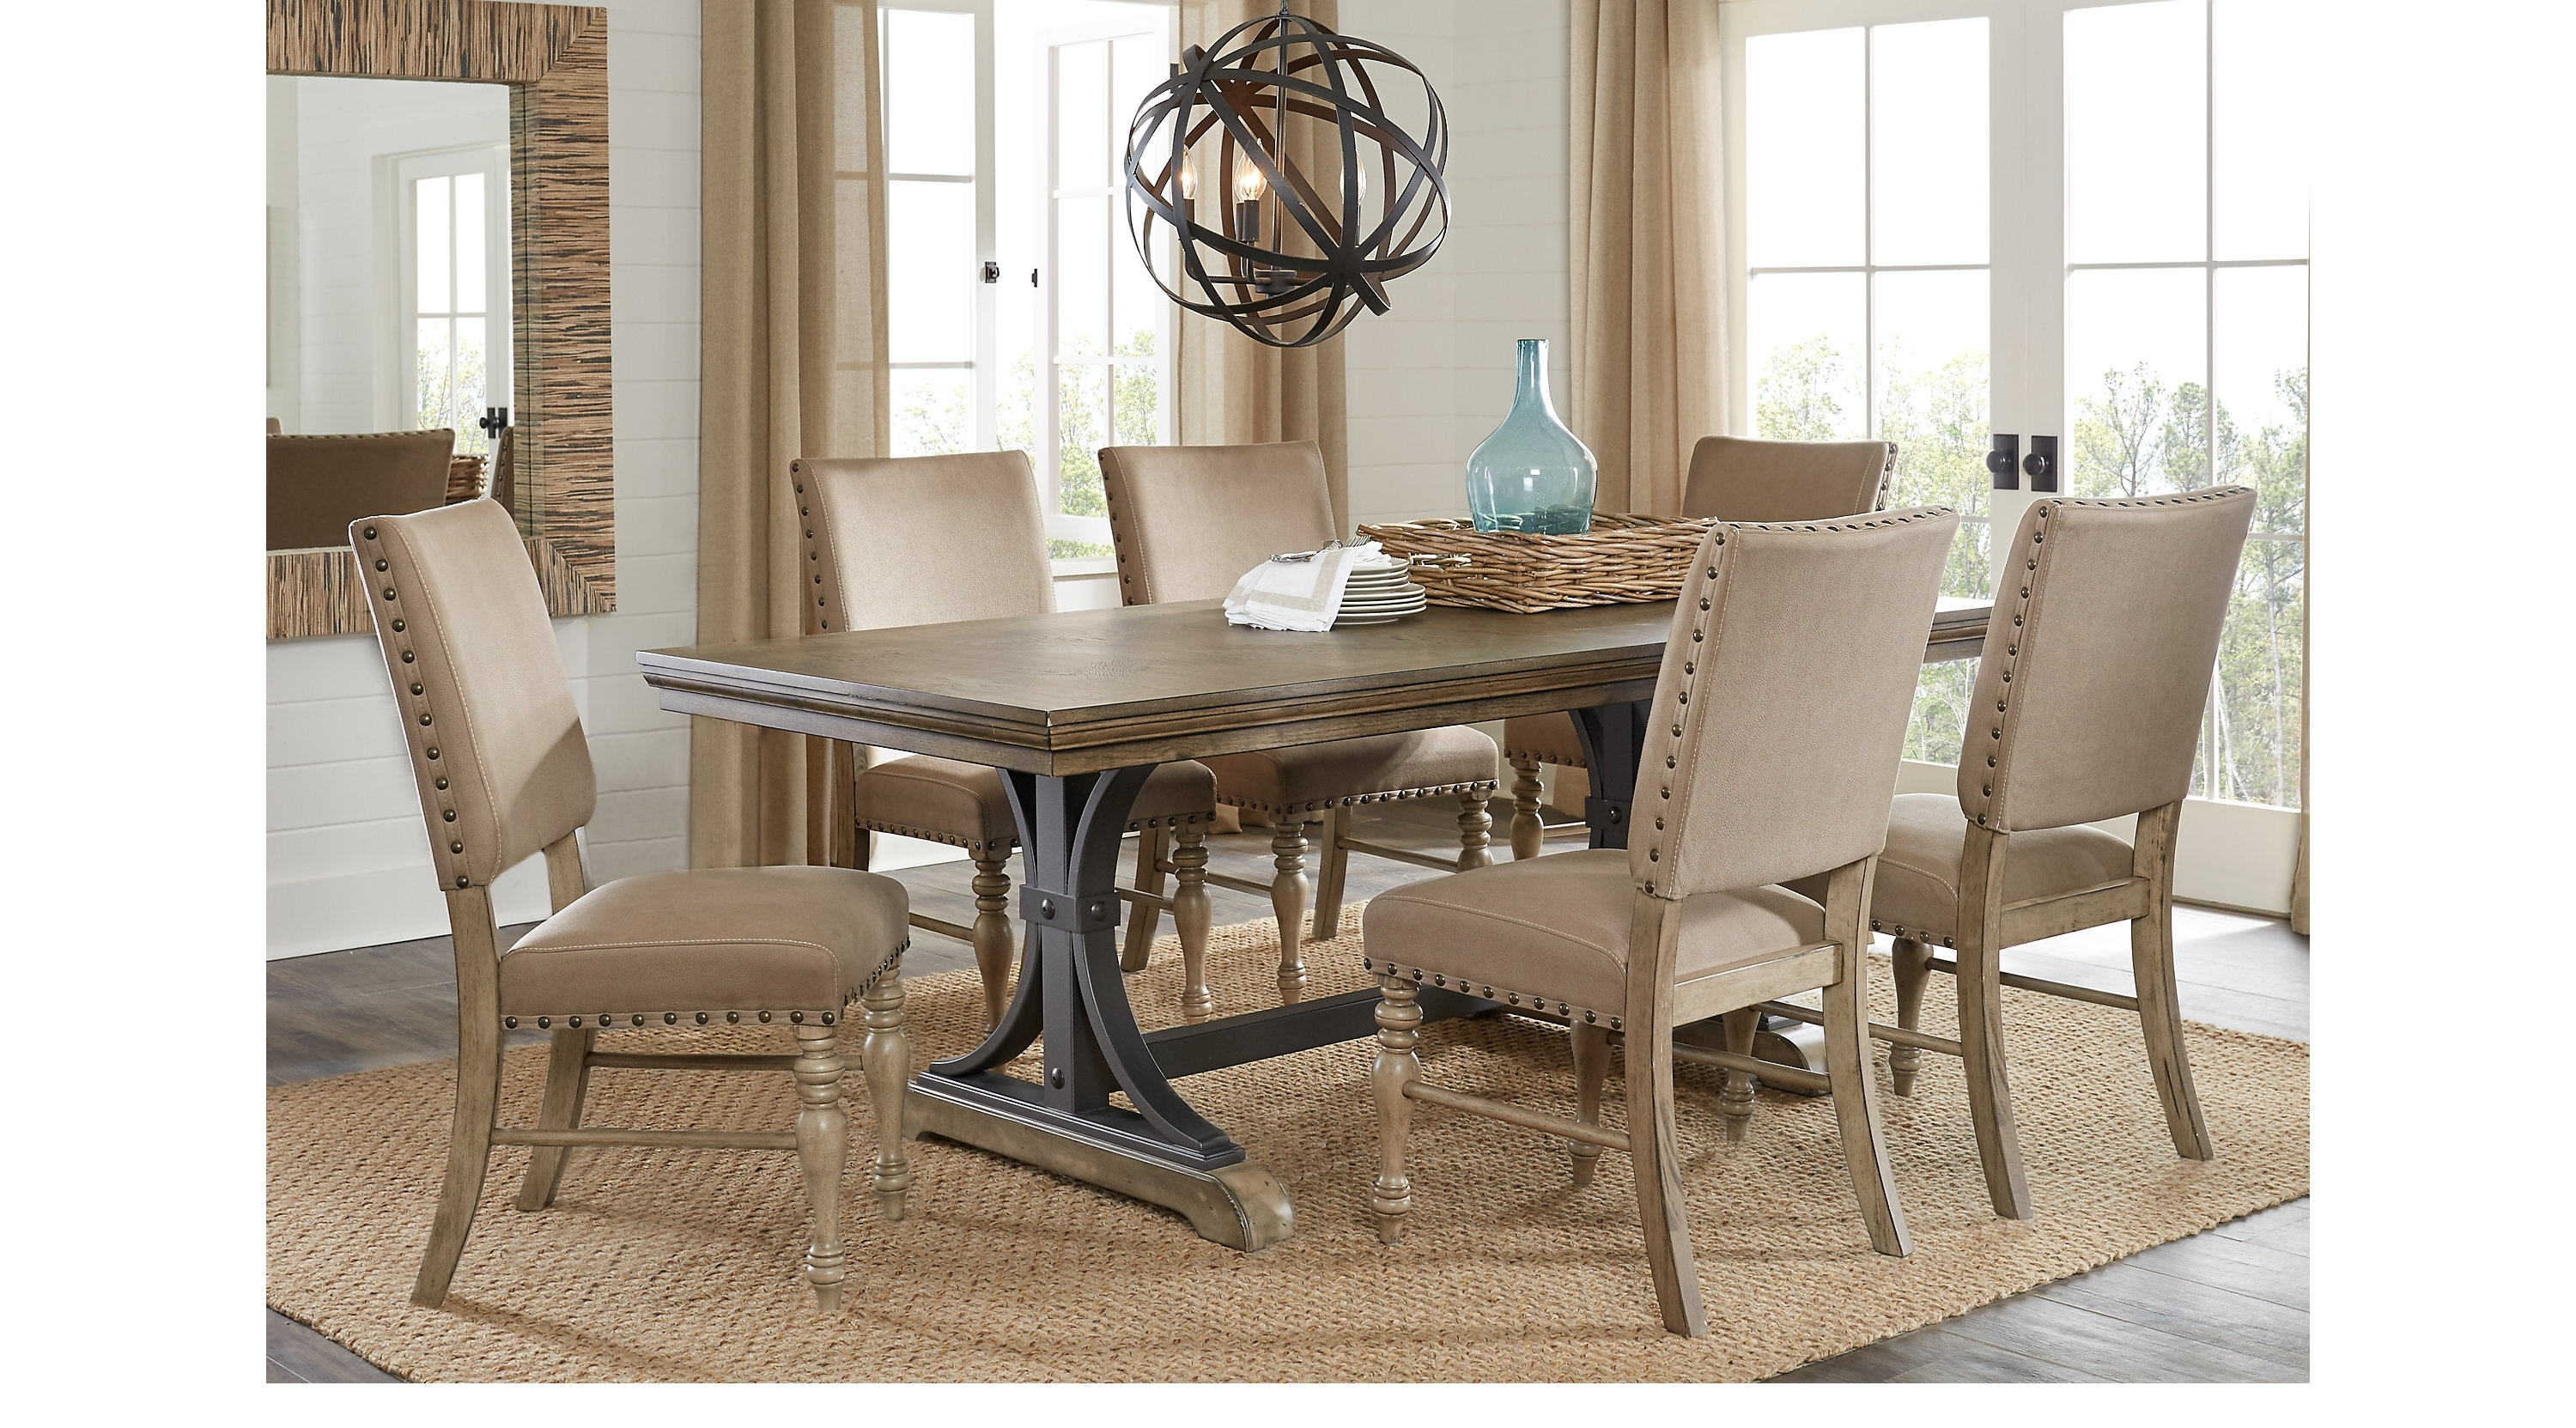 Home Design Decorating Ideas With Jaxon 7 Piece Rectangle Dining Sets With Wood Chairs (View 23 of 25)